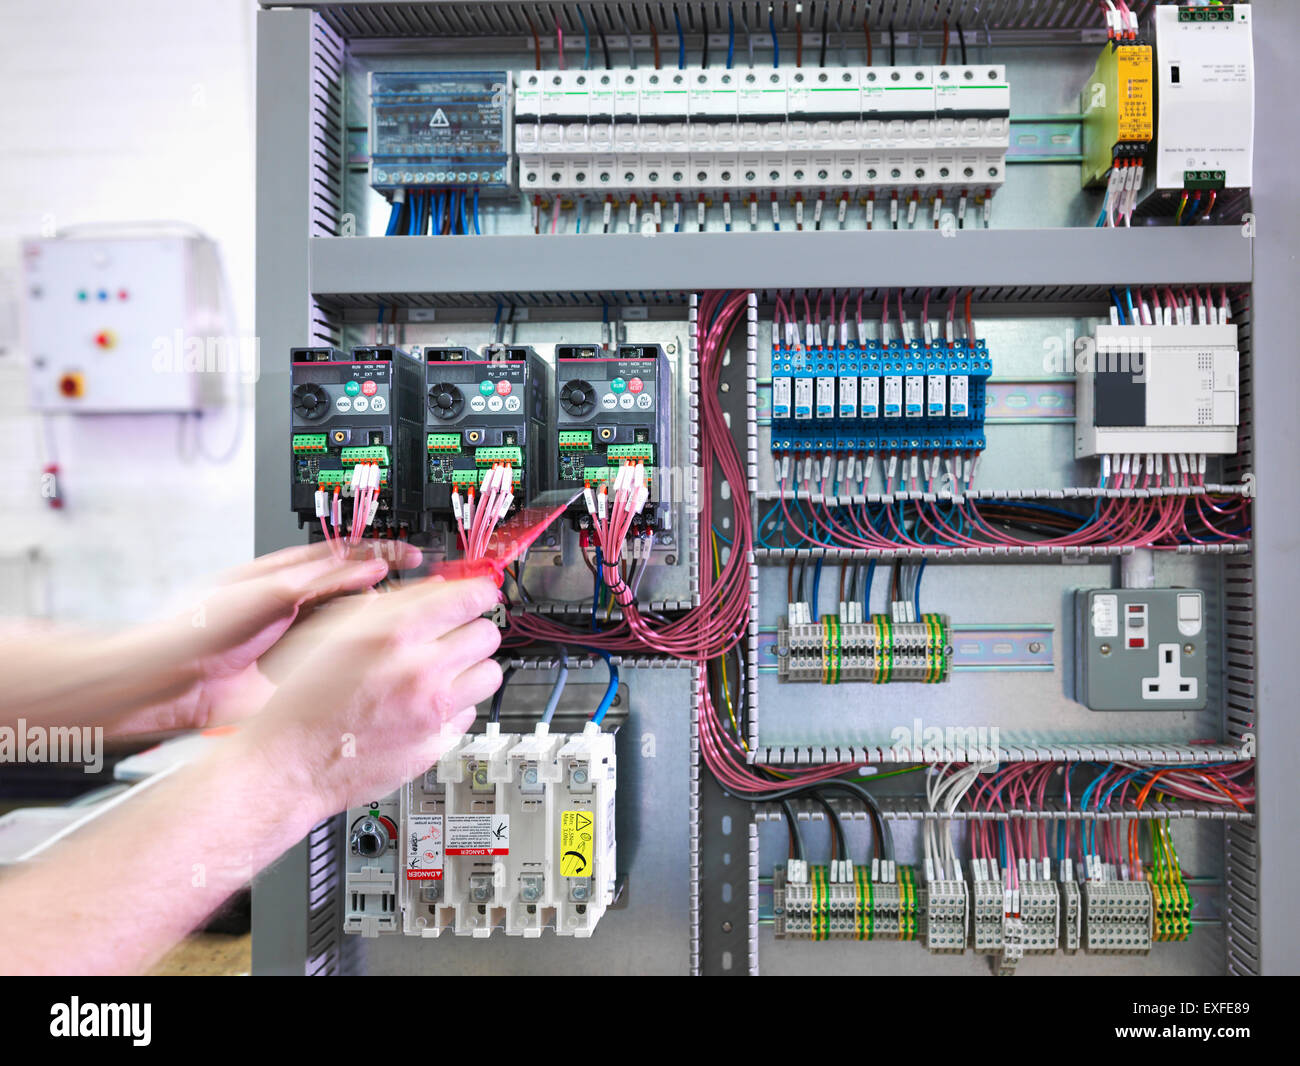 Electrical Wiring Test Board Ask Answer Diagram Questions Hands Of Engineer Testing Switch In Engineering Rh Alamy Com